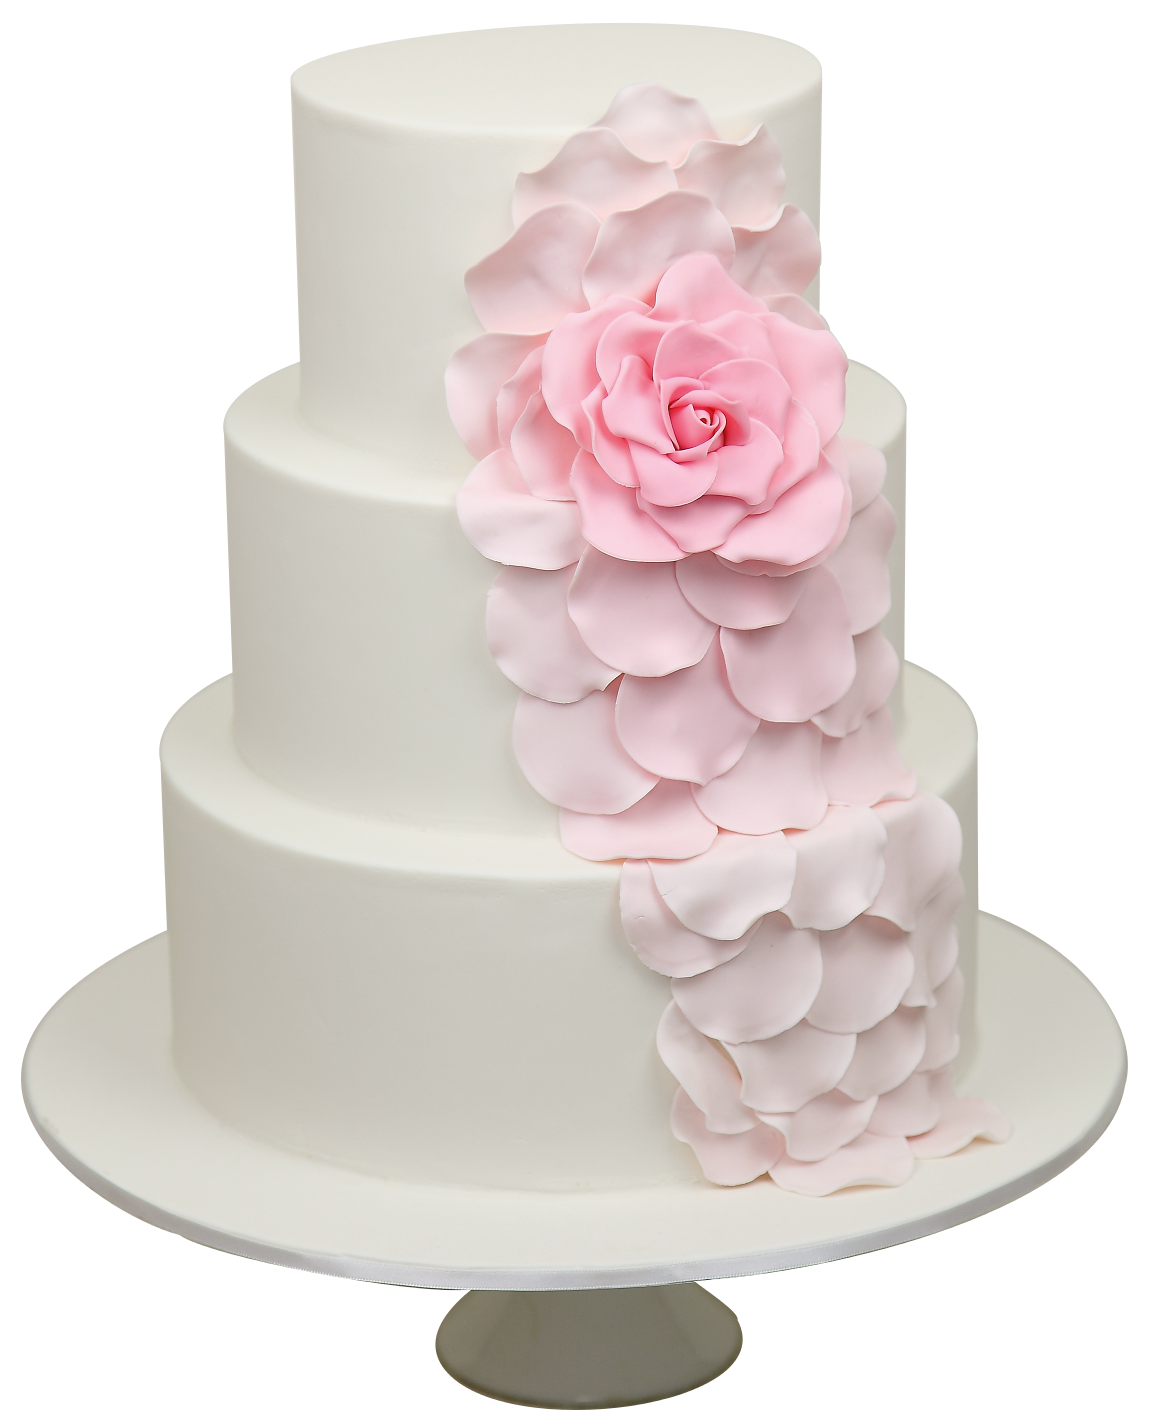 Wedding cakes png. Cake images free download